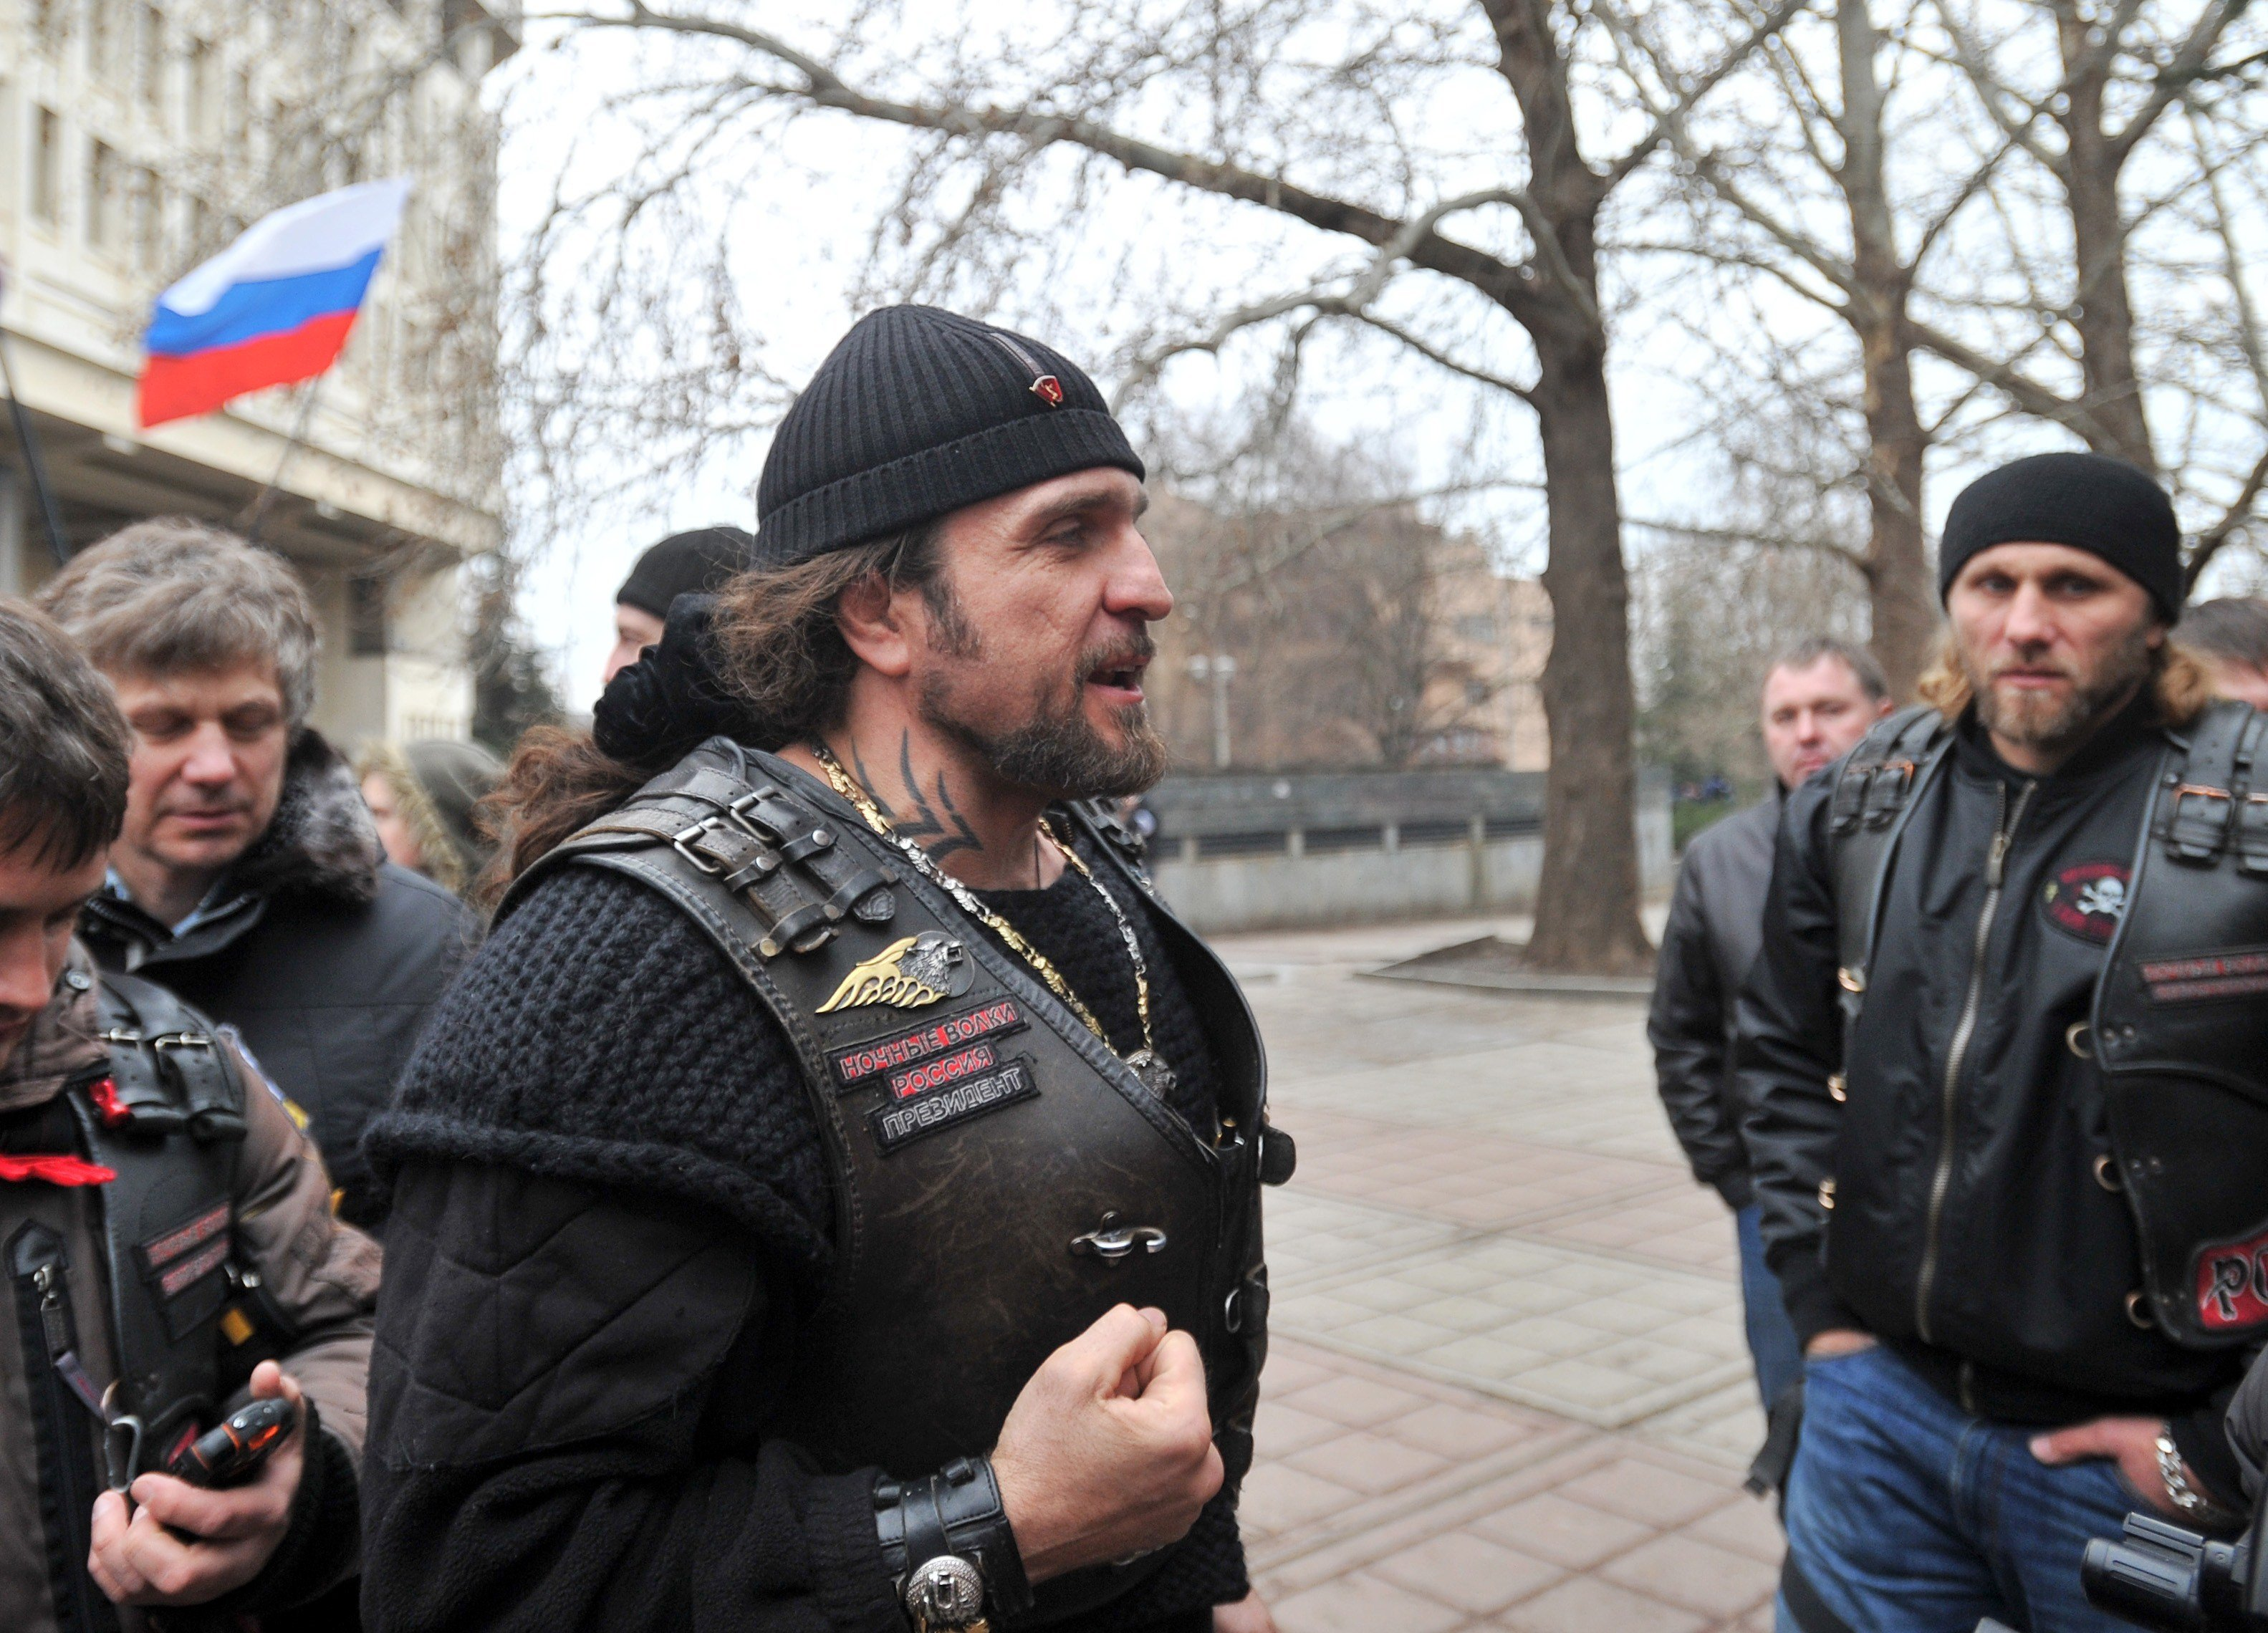 Alexander Zaldostanov attends a rally of pro-Russian activists waving the Russian flag, in front of the local parliament building on February 28, 2014 in Simferopol, Crimea, Ukraine.